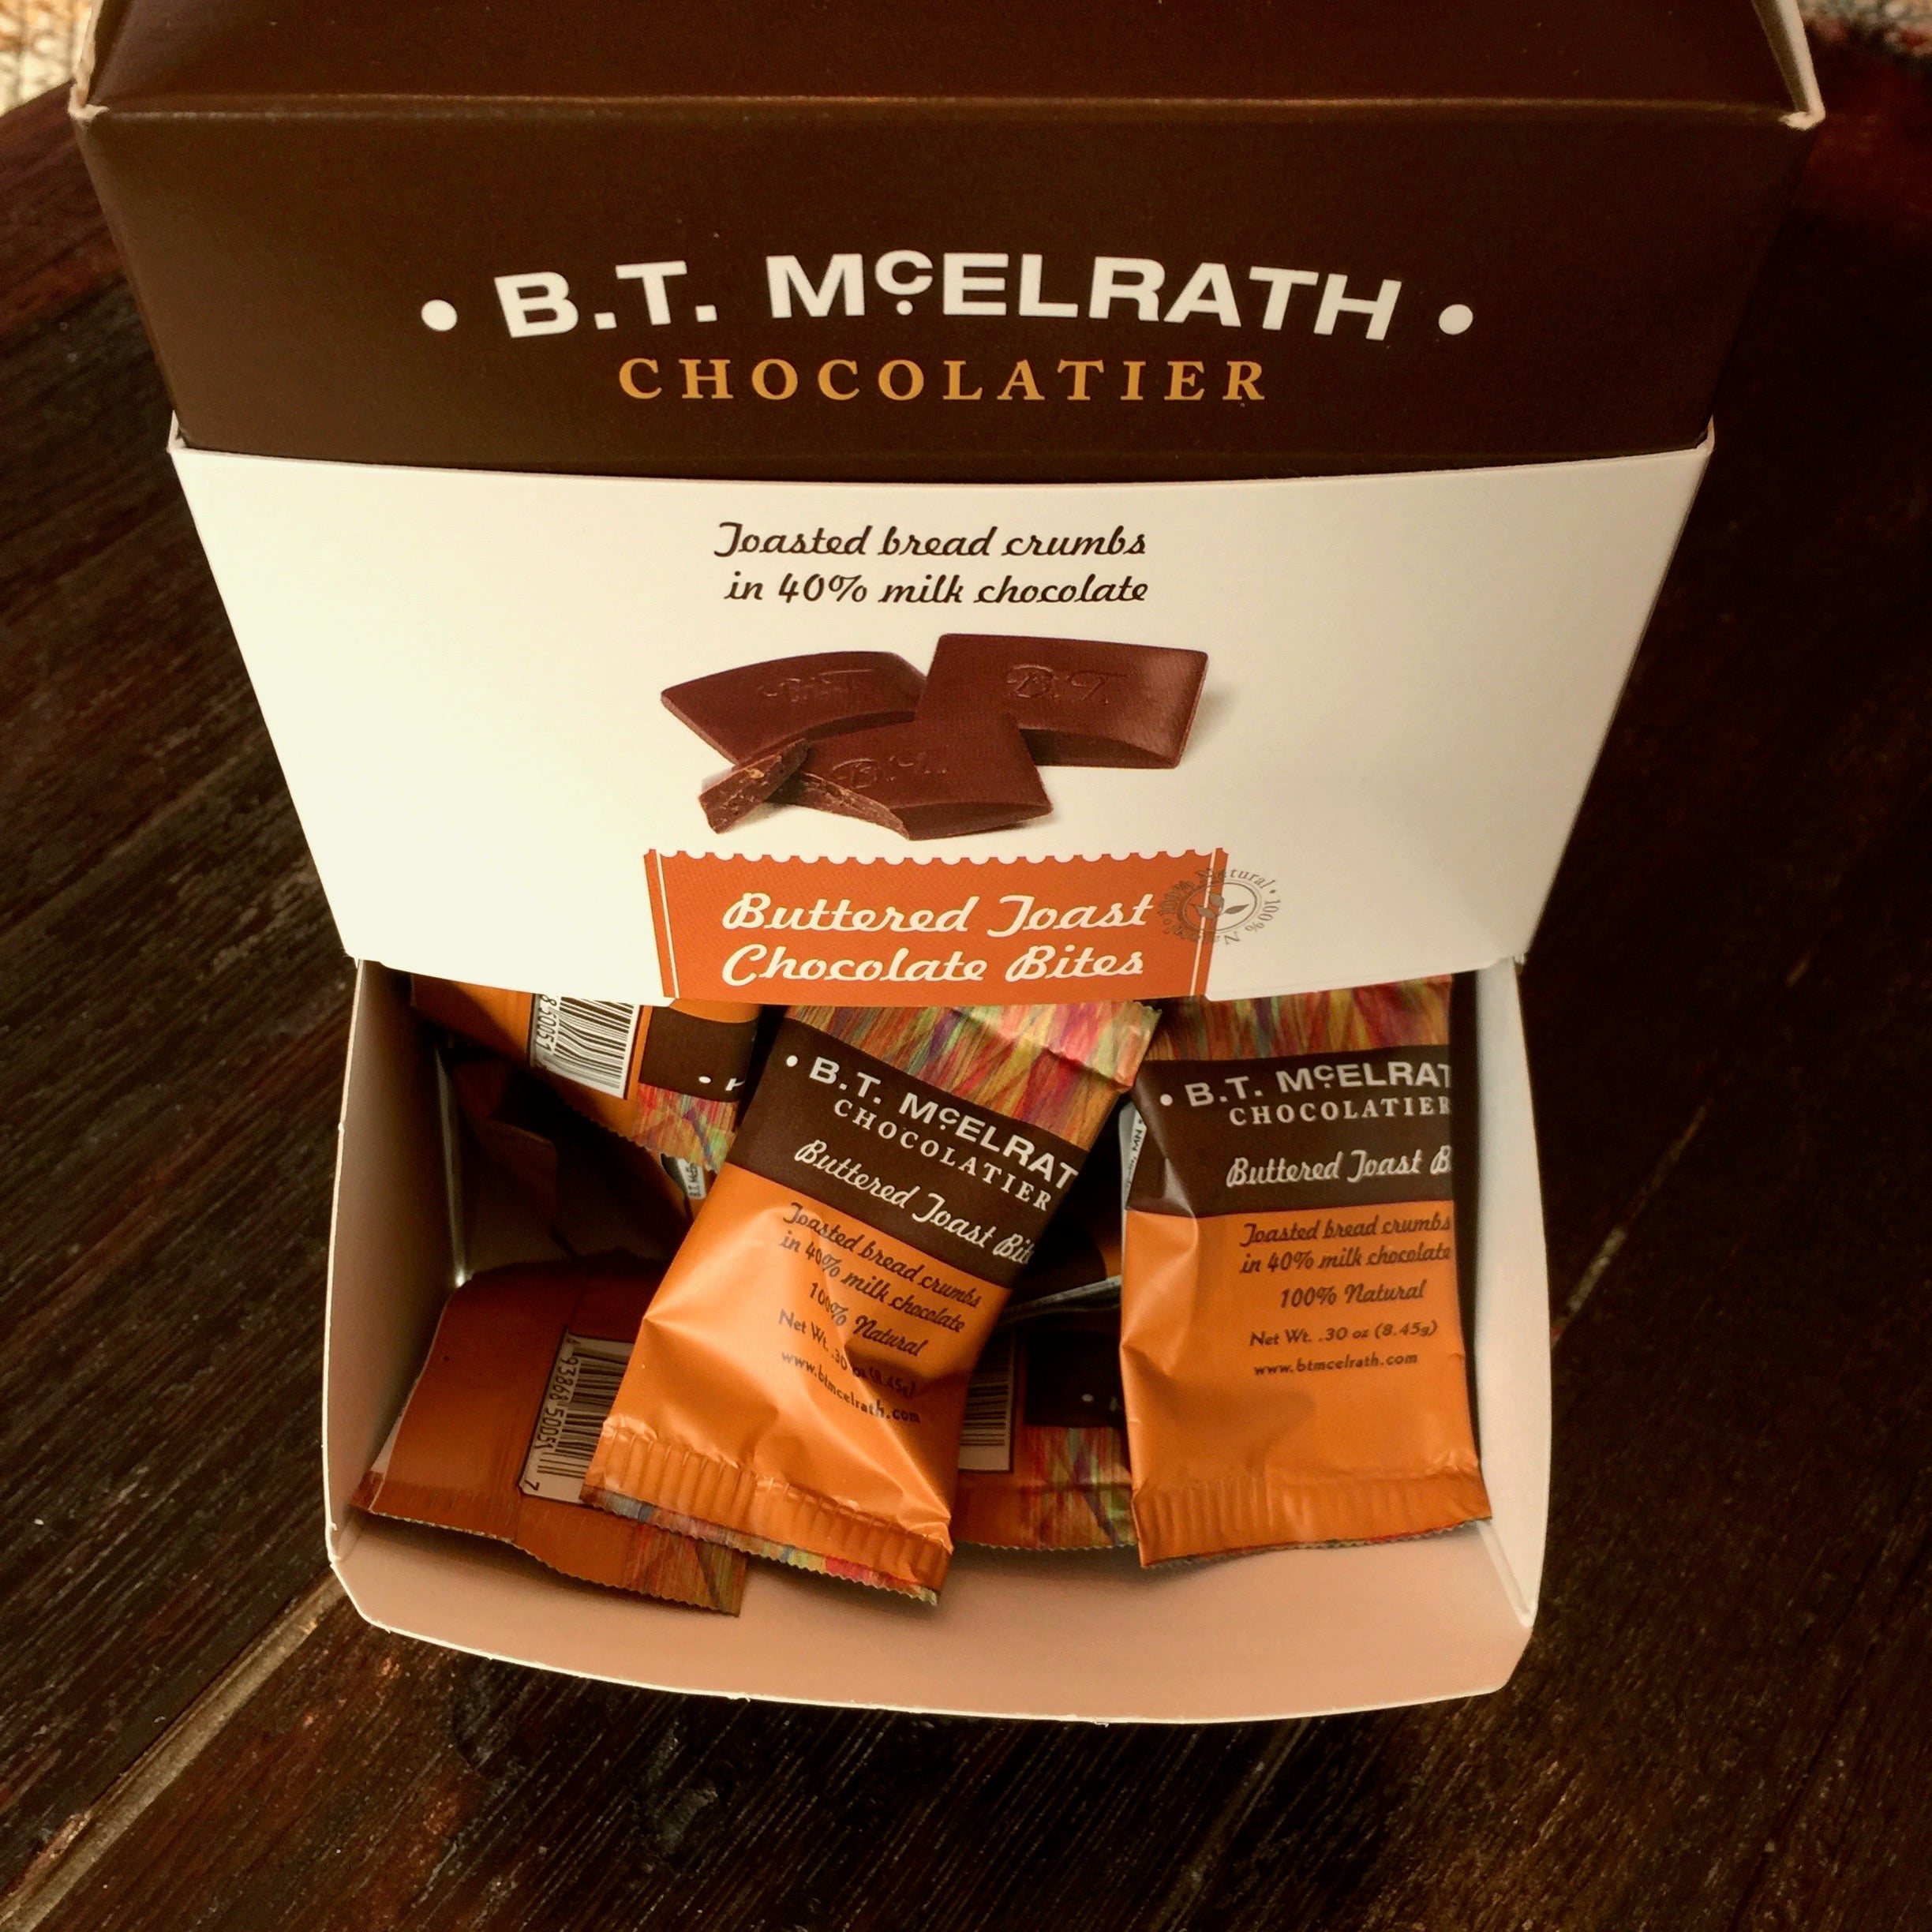 B.T. McElrath Buttered Toast Chocolate Bites - 90 Piece Box From The Chocolate Path®